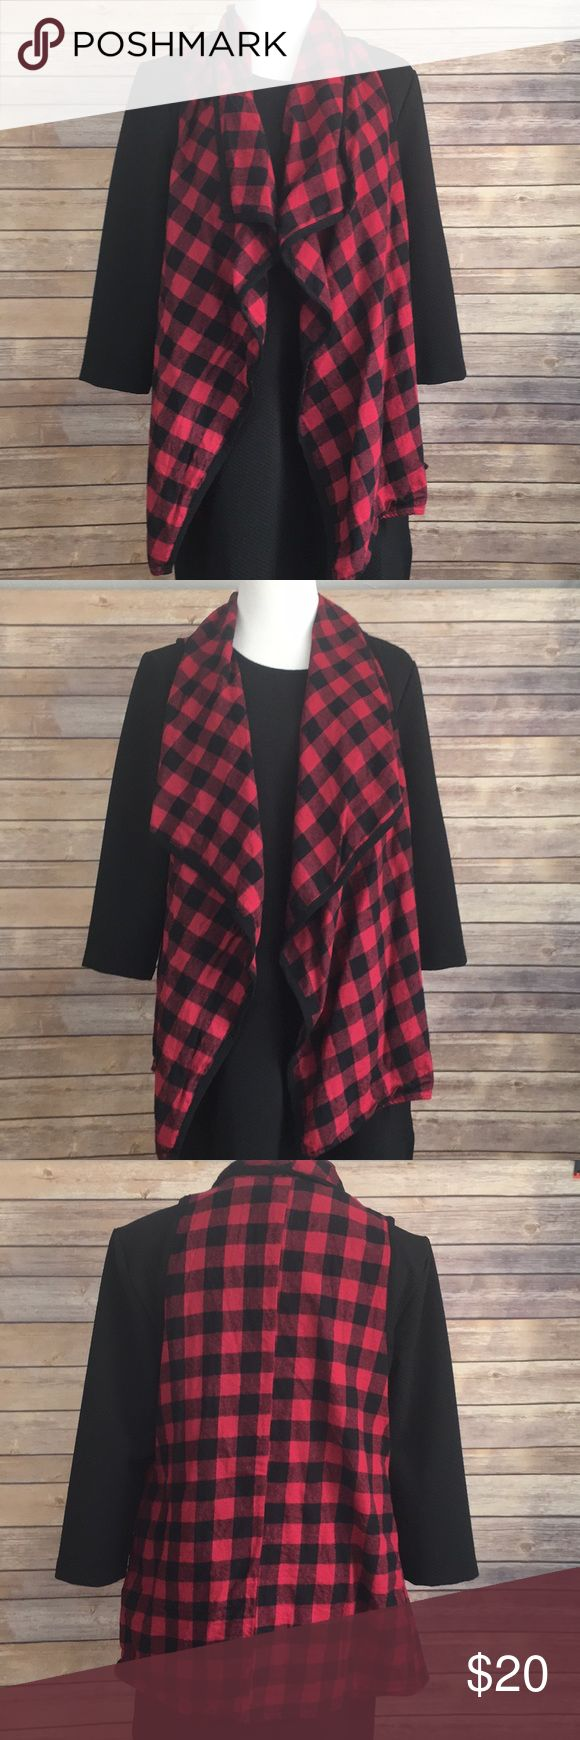 Buffalo plaid waterfall cardigan. Buffalo plaid / buffalo check. Black piping. Thin vest great for layering. Fits a variety of sizes due to style but probably best for 10 to 14. It is cotton. twenty second Tops